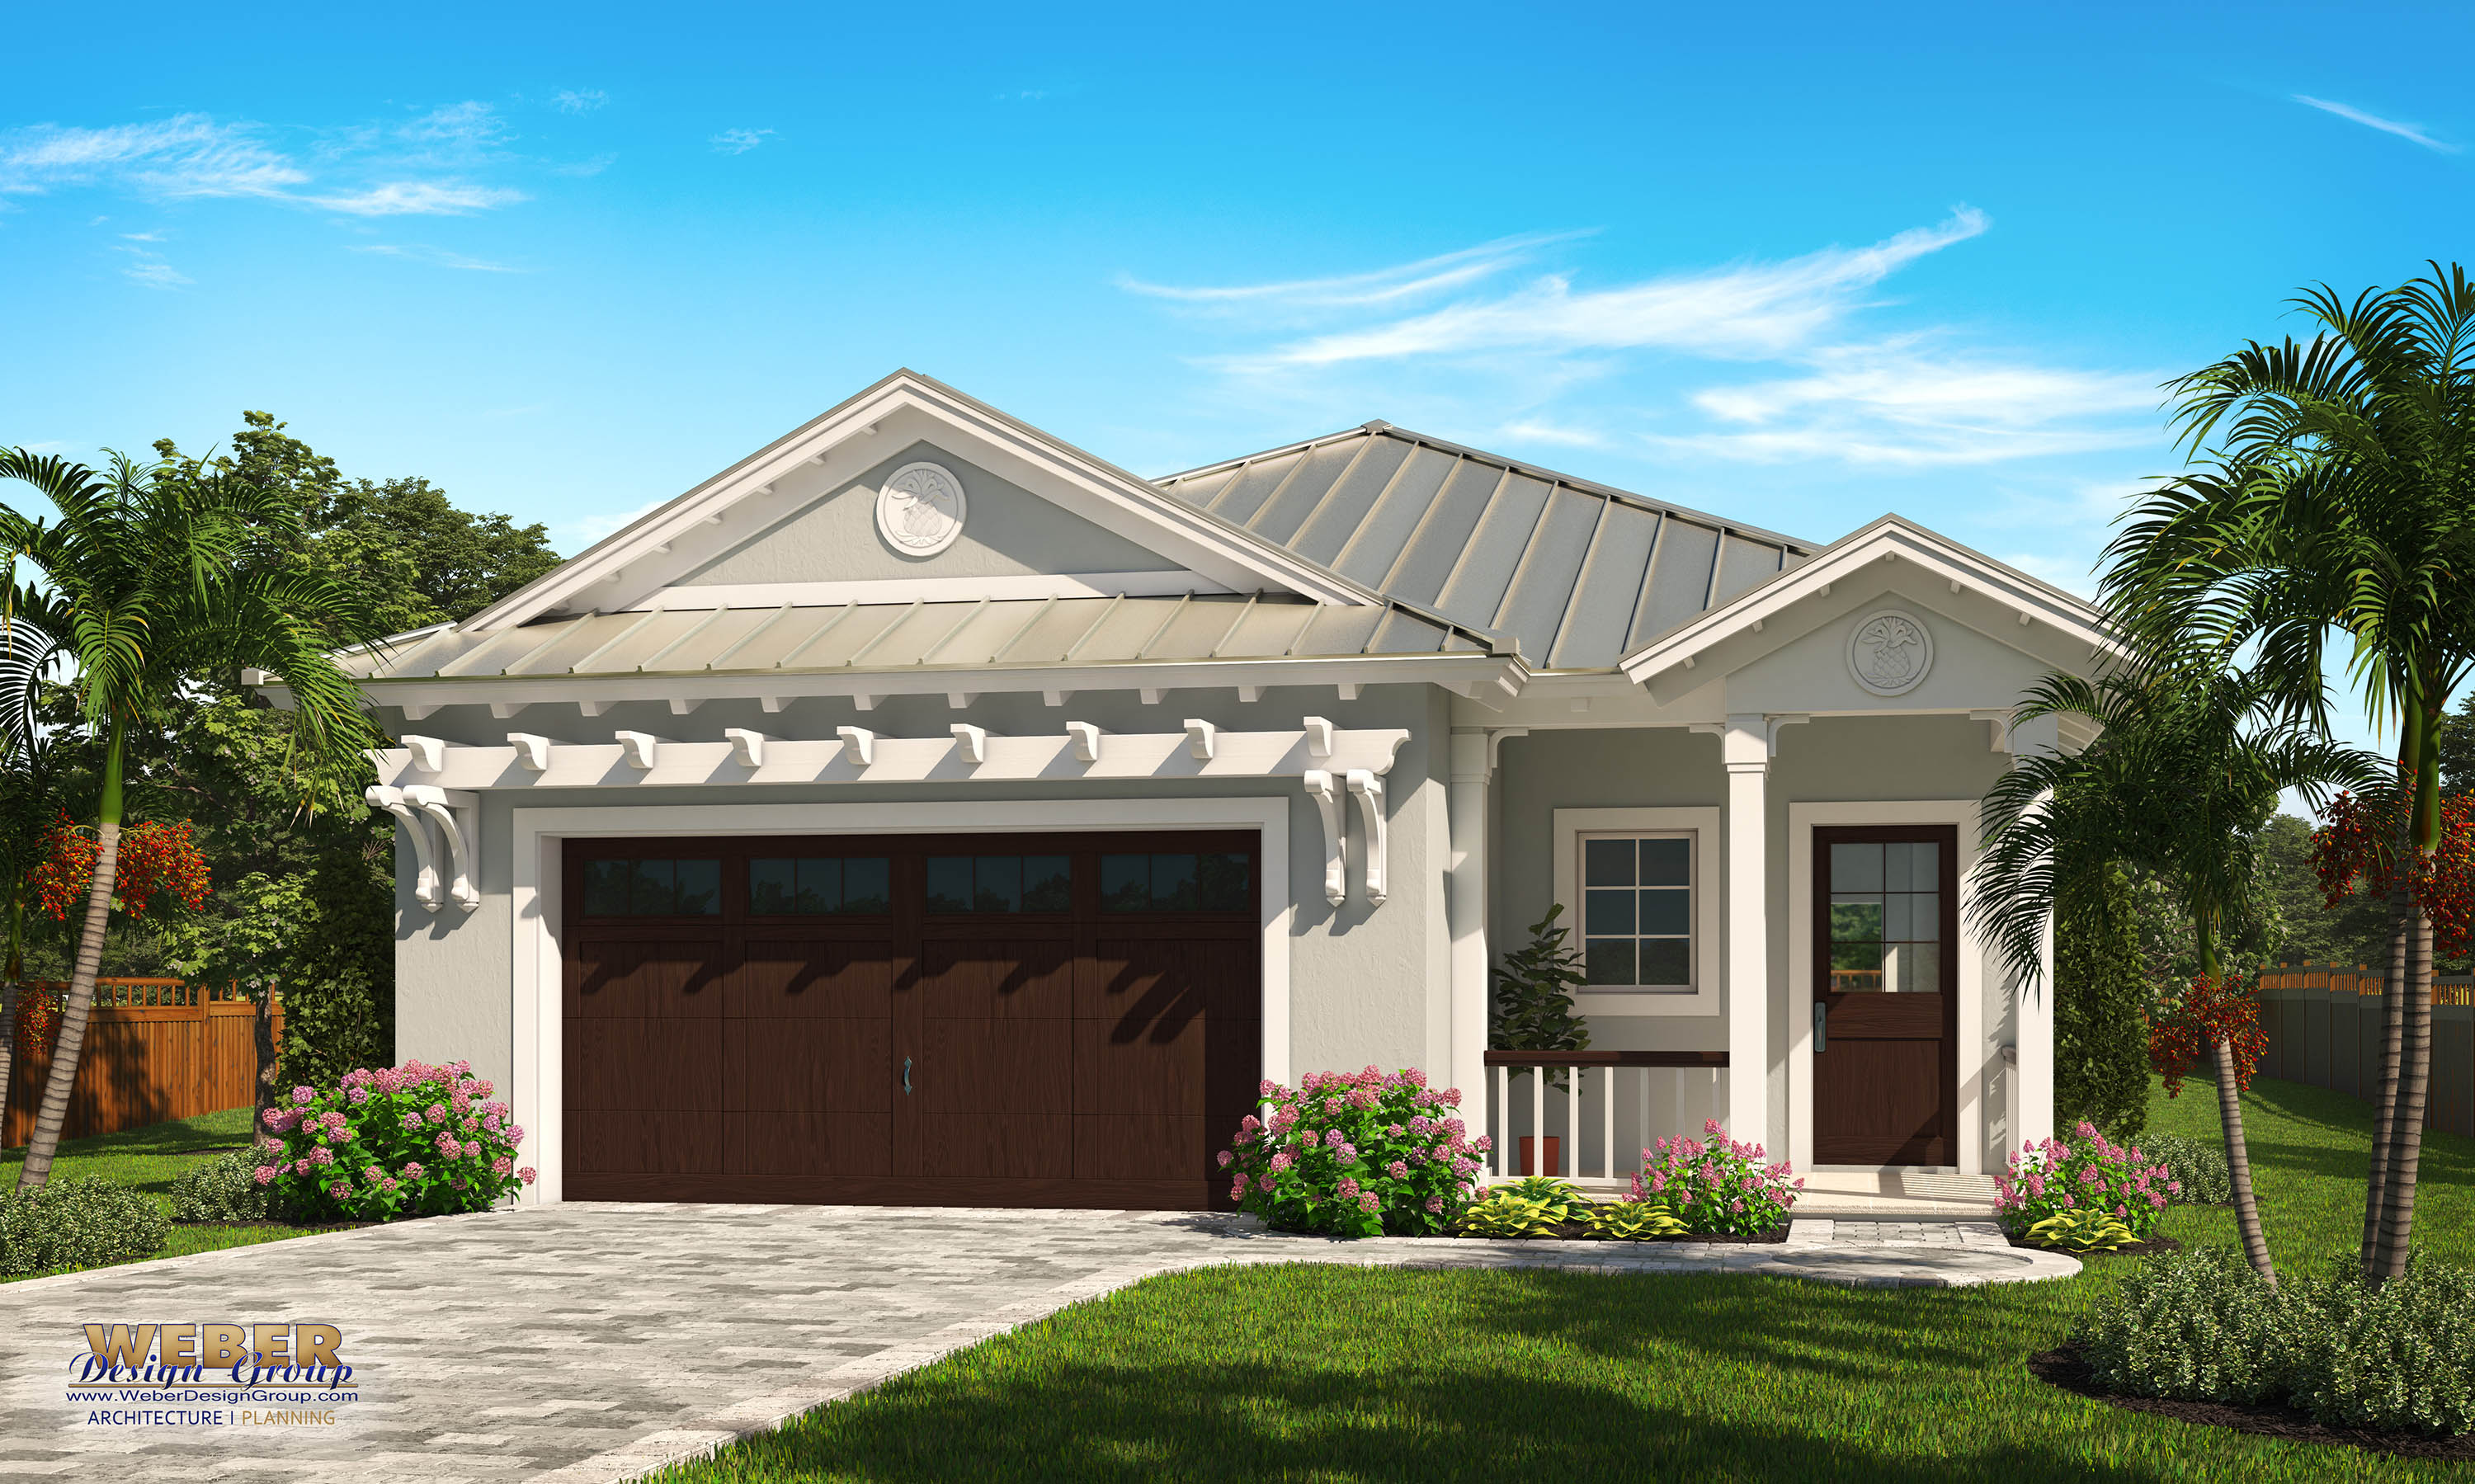 Ocean ridge house plan west indies style narrow lot for Home plans for narrow lots